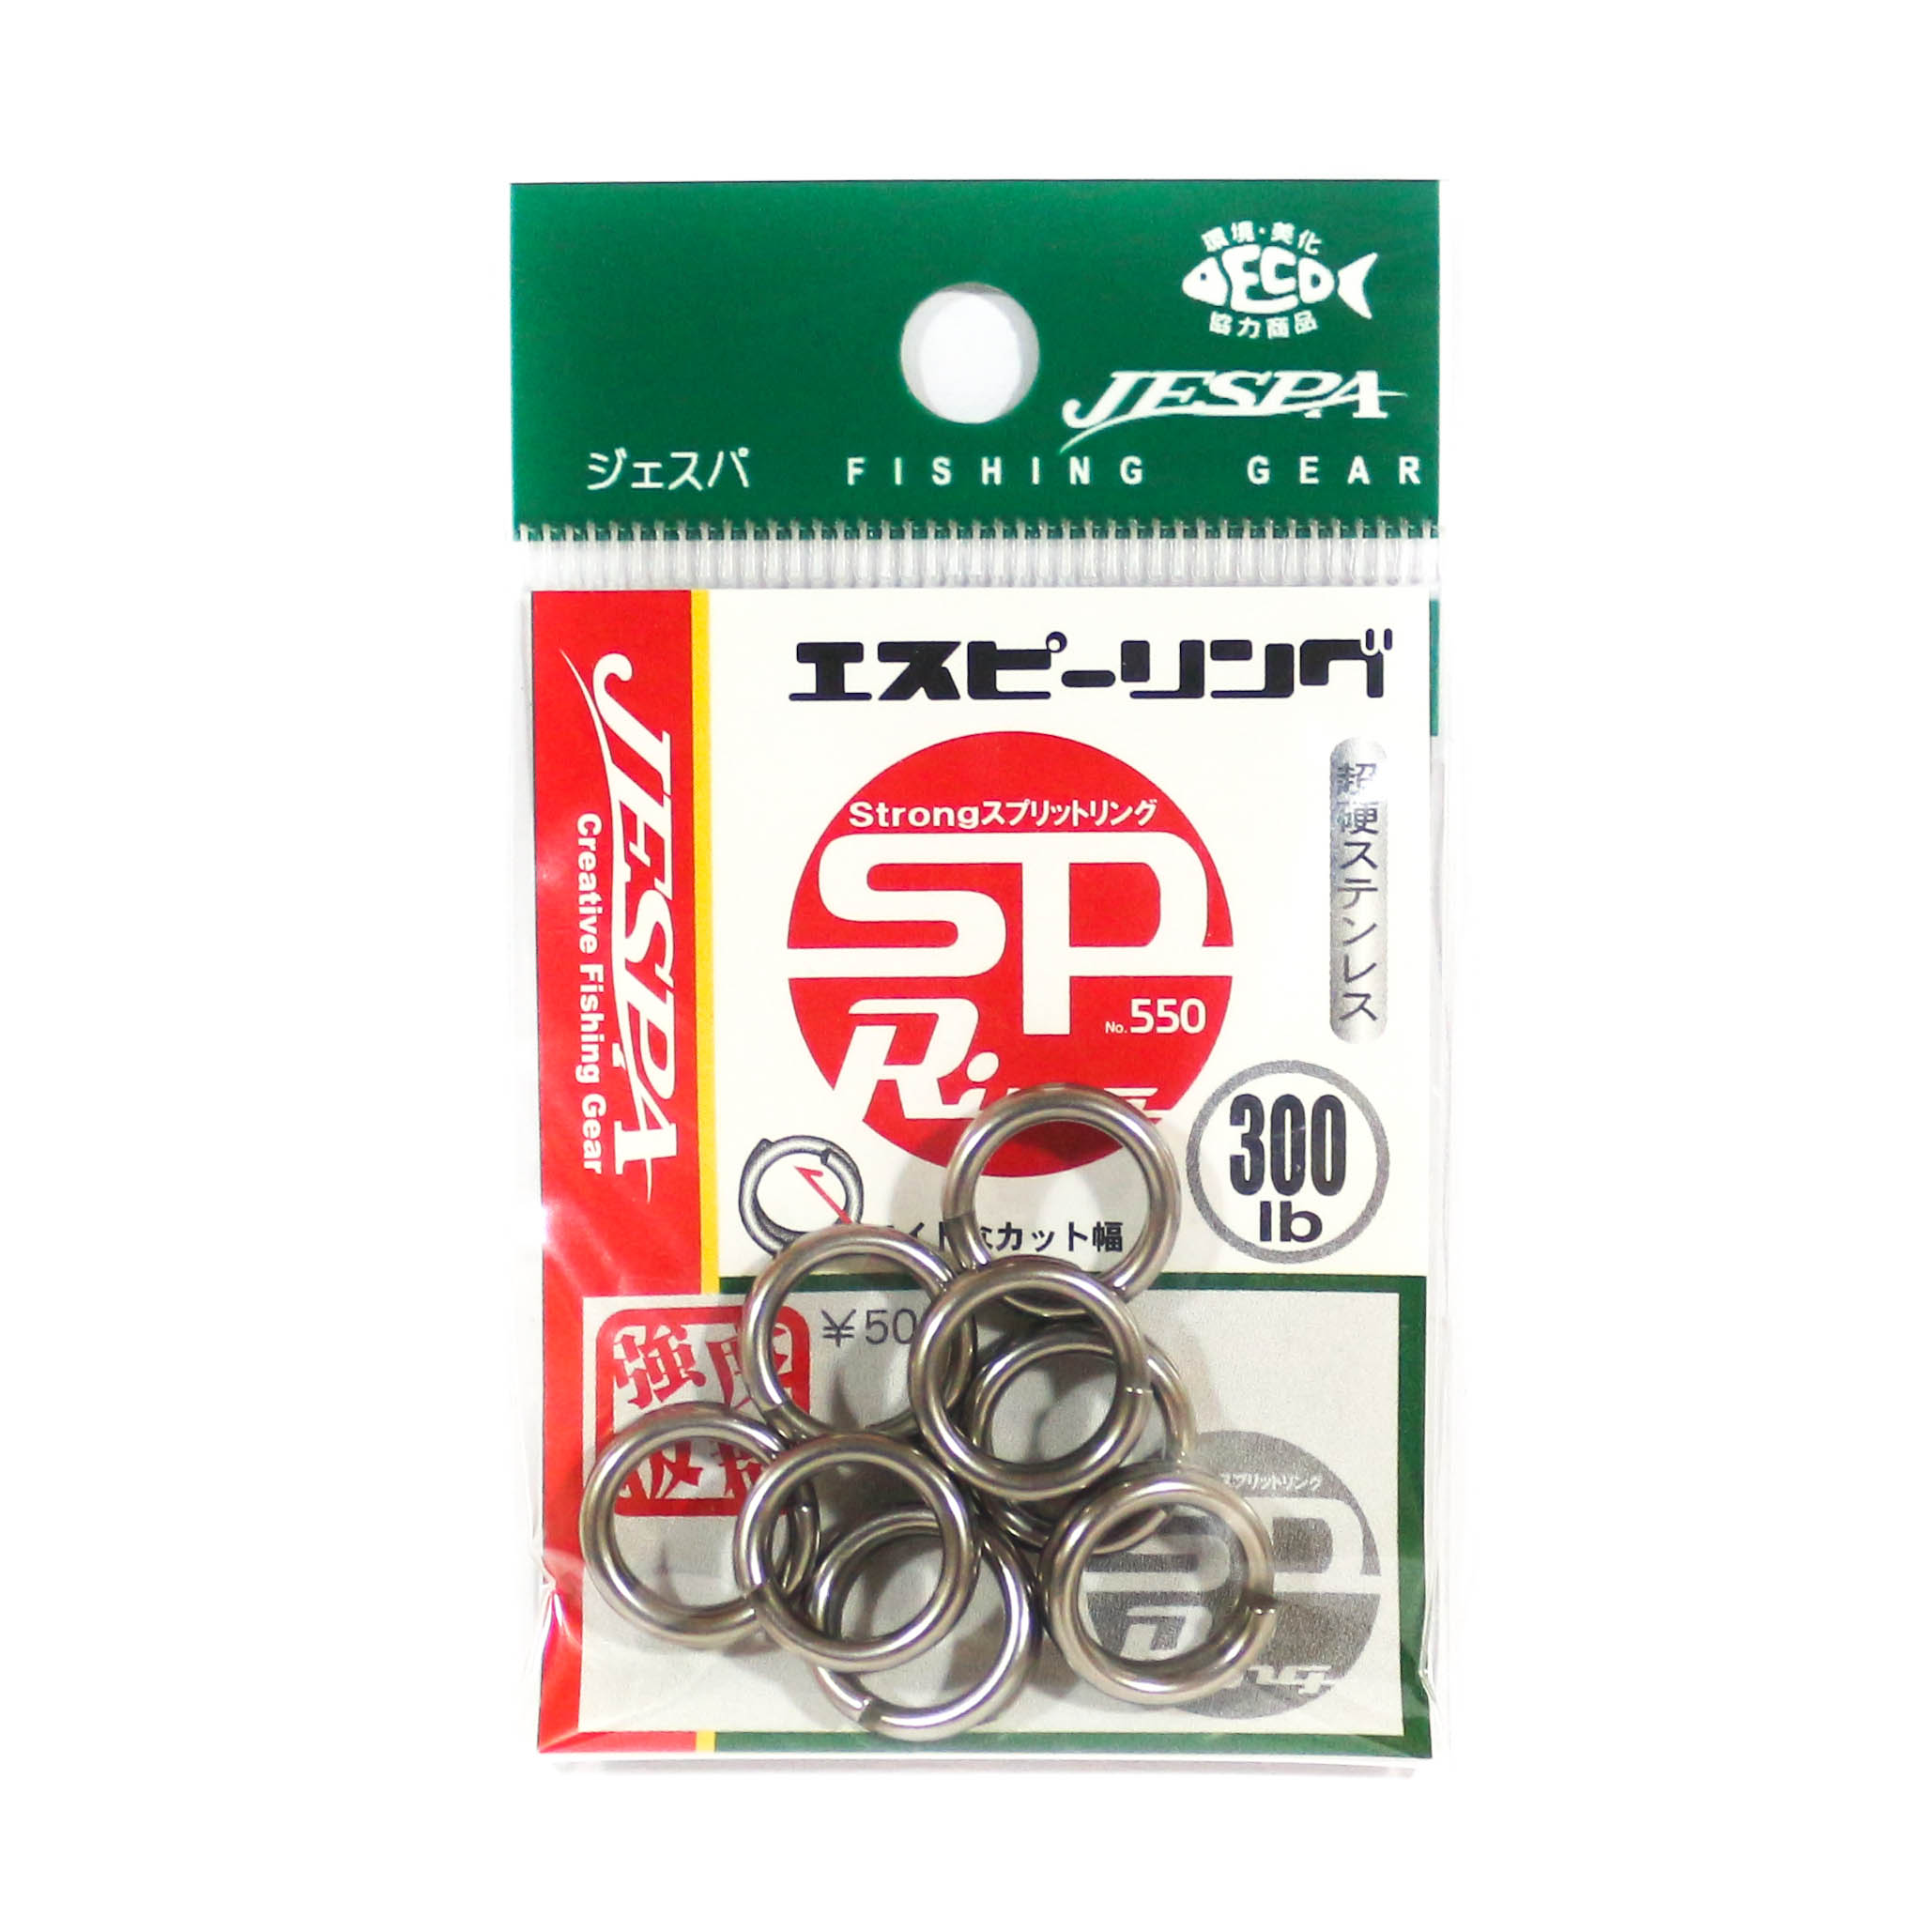 Yarie Jespa M. 550 Split Rings Heavy Duty Size 300lb (4533)